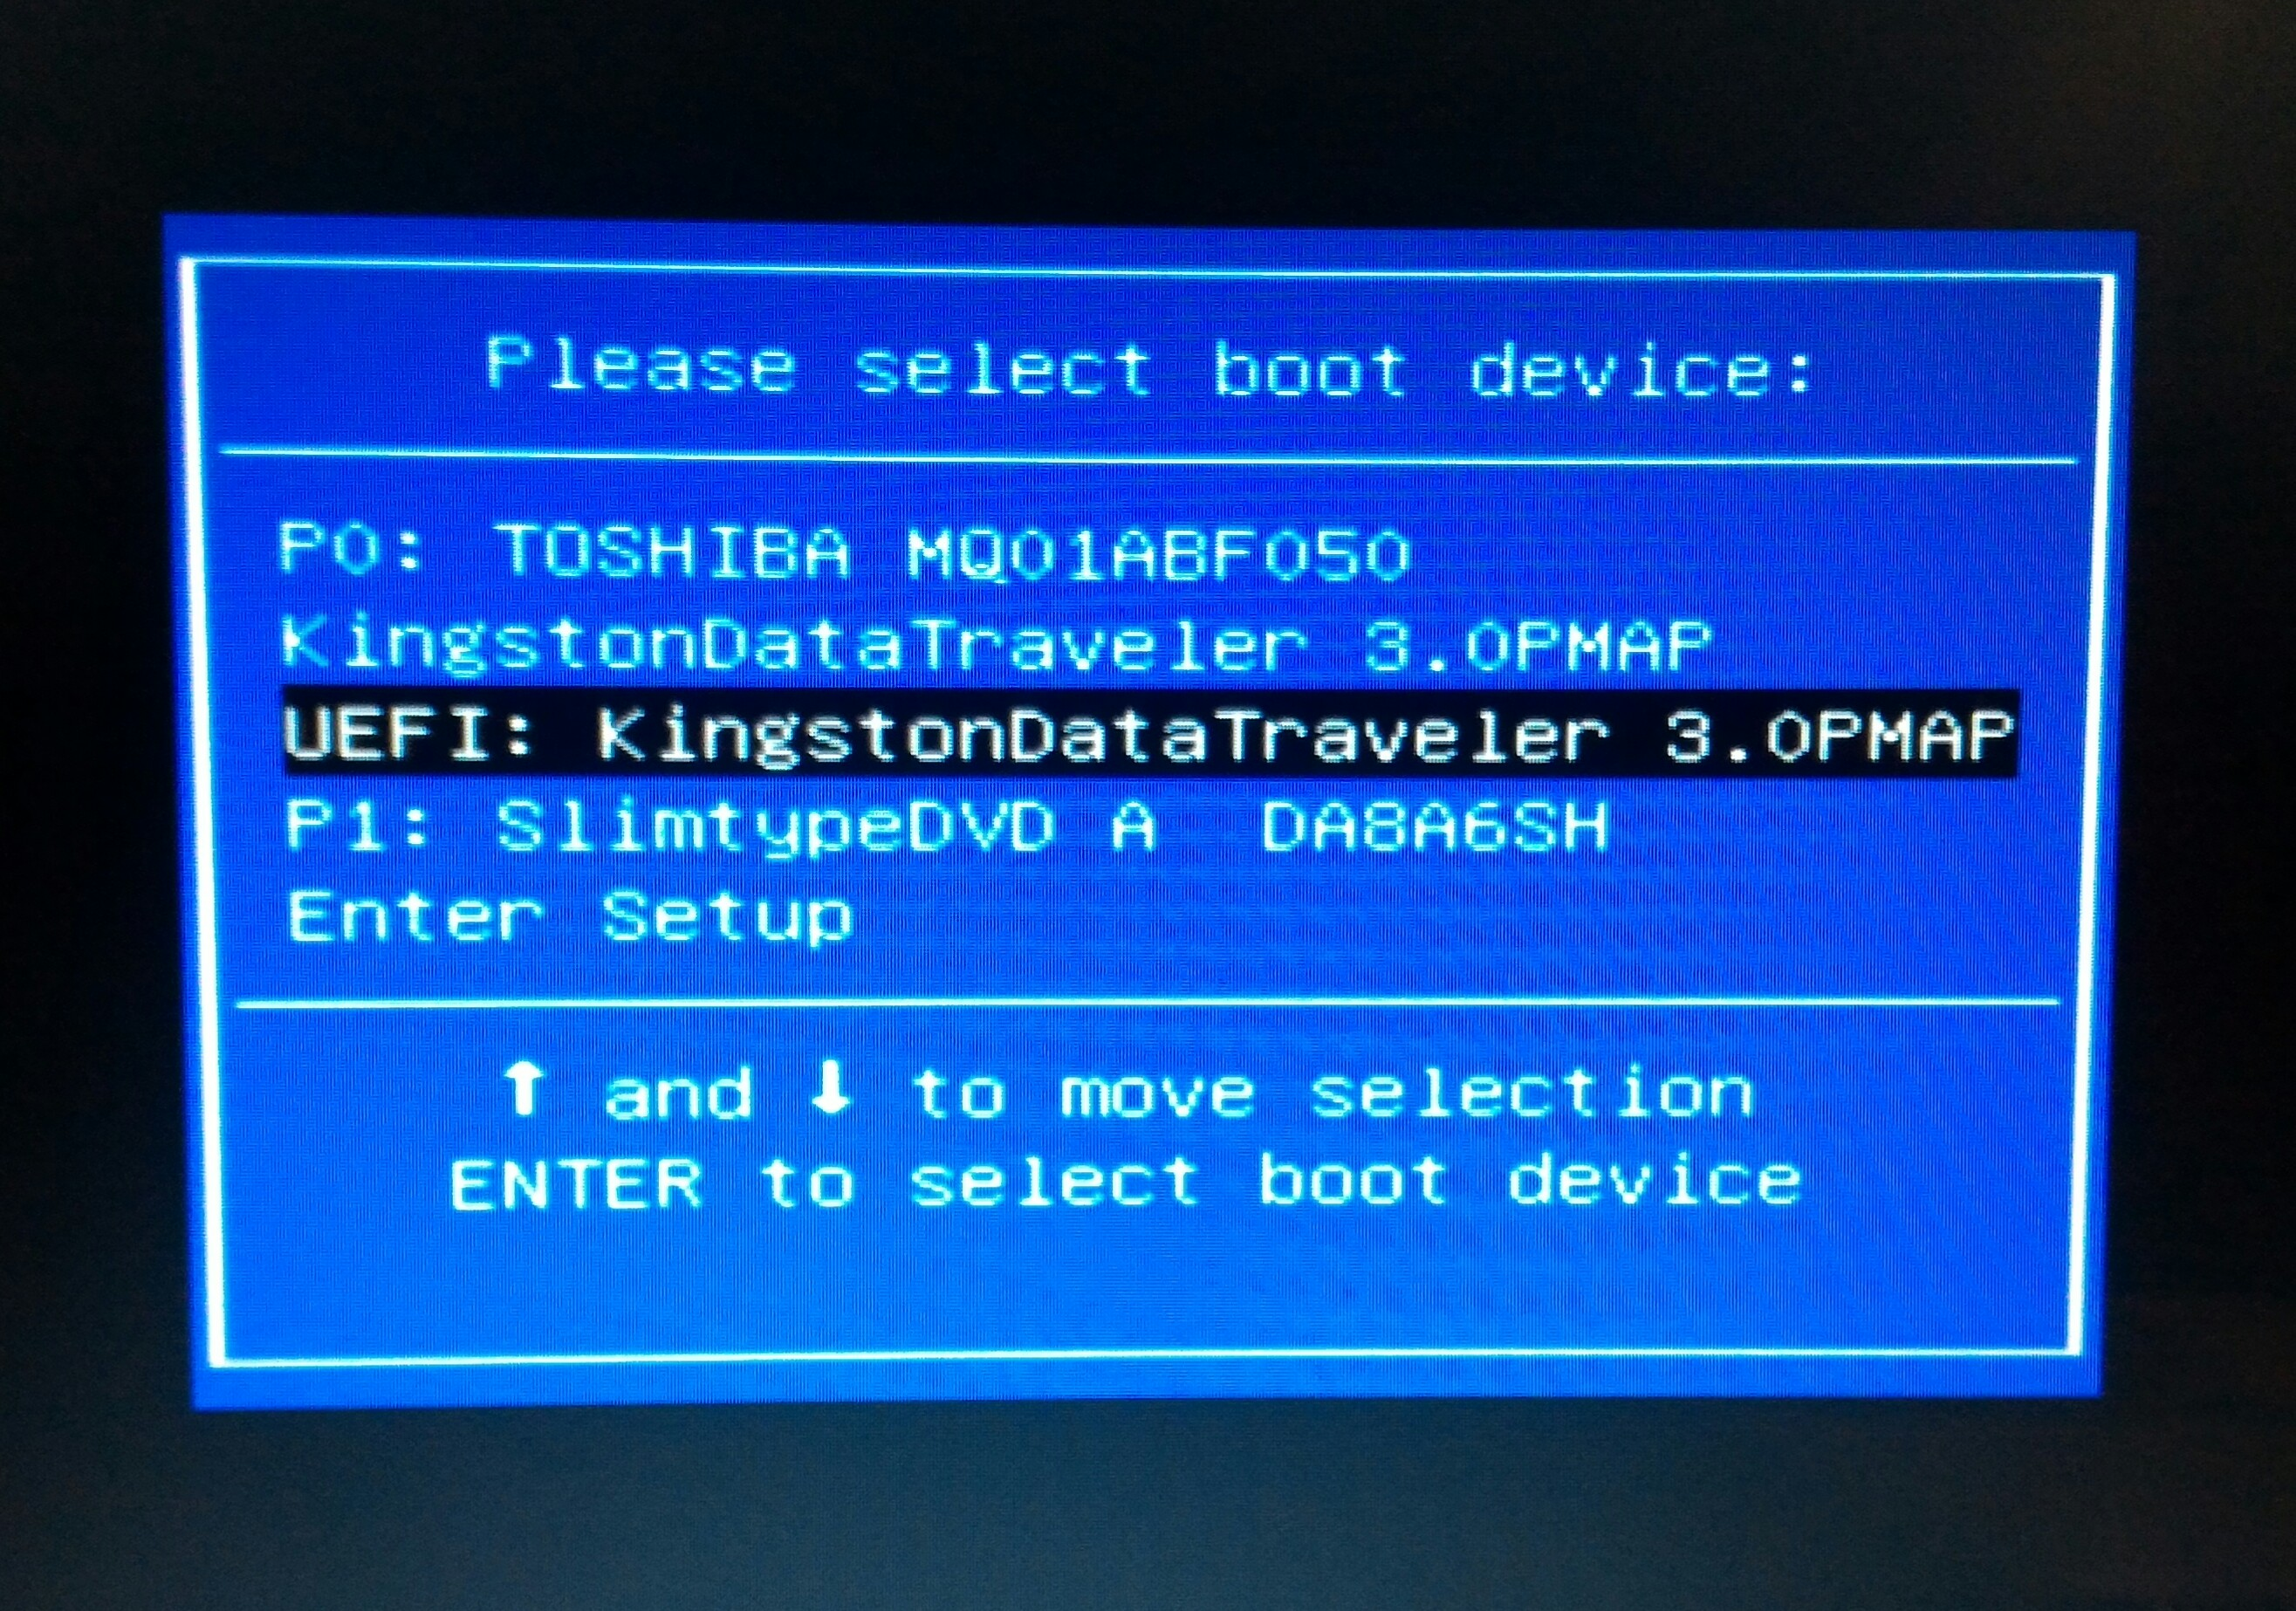 How do I start (boot) my computer from a USB device or DVD